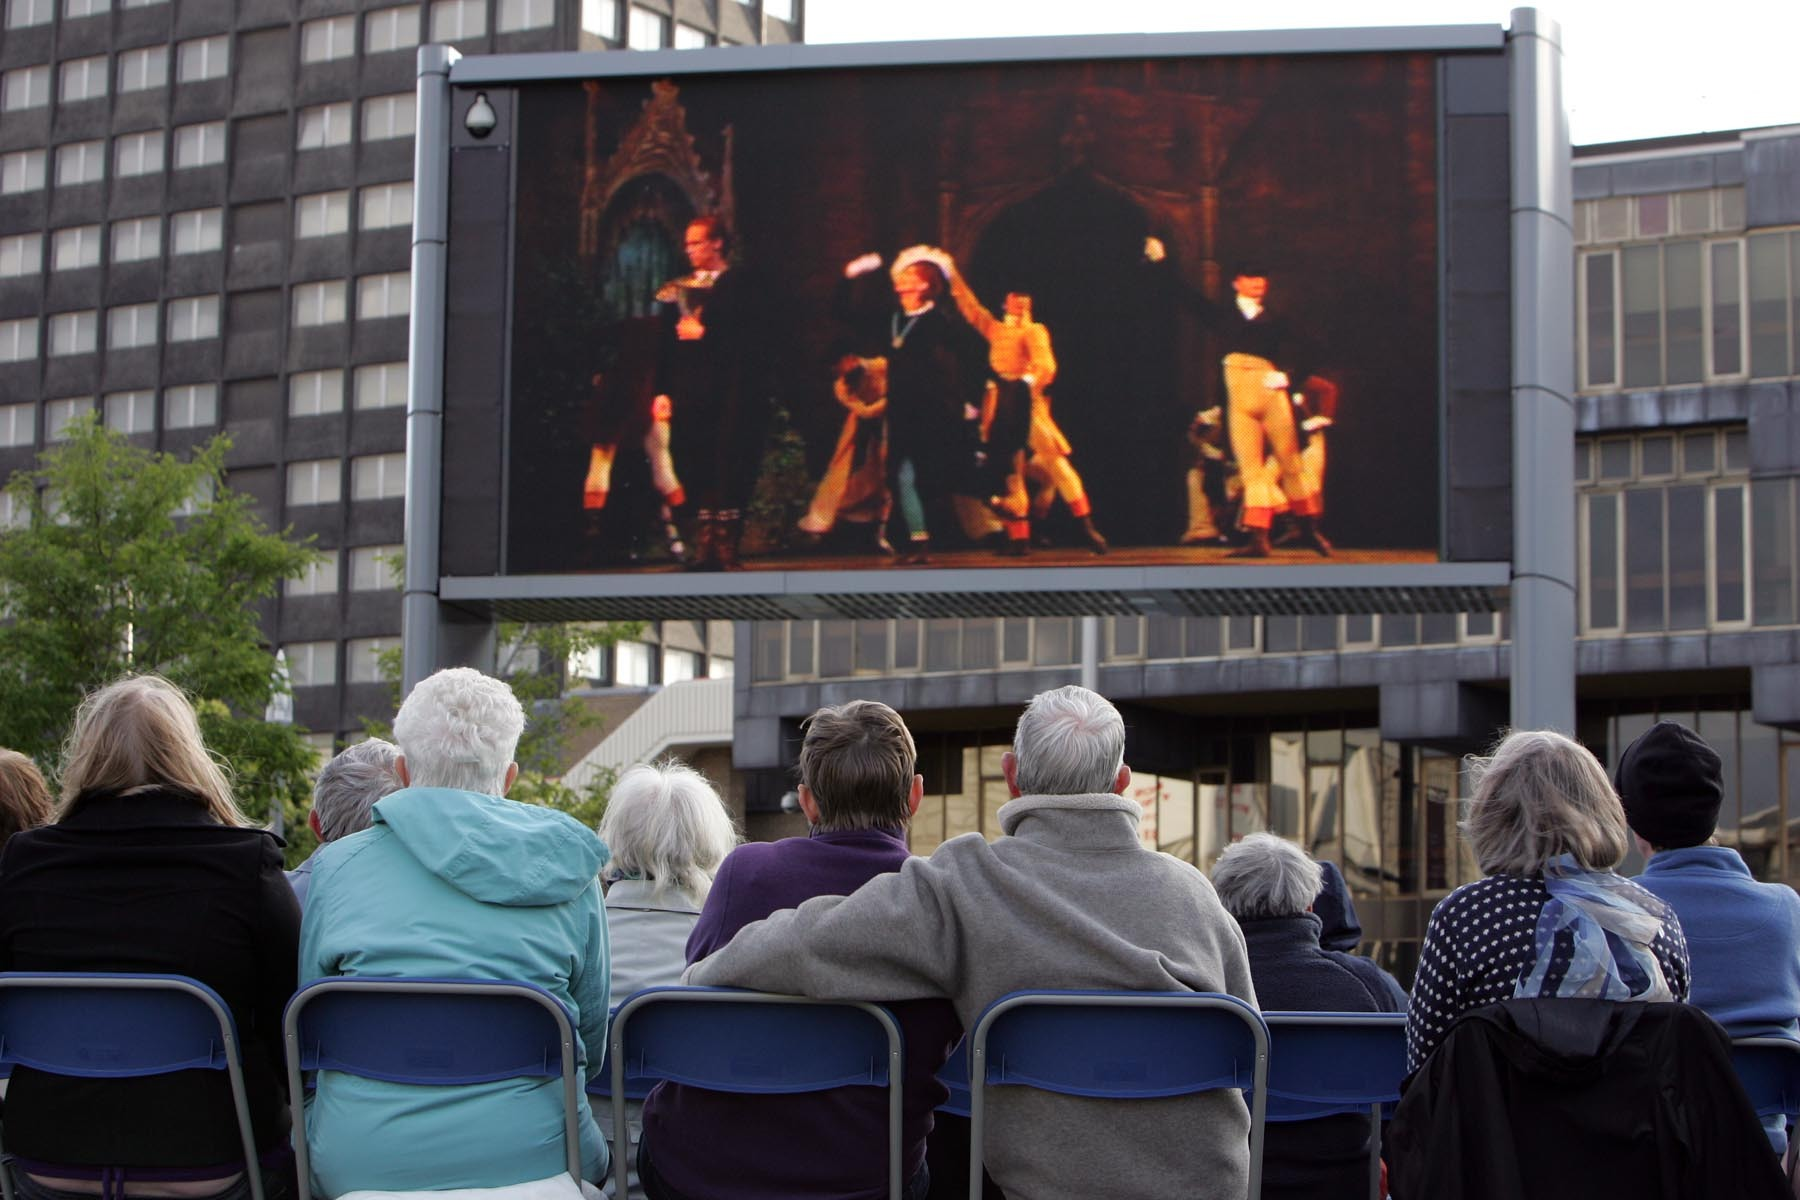 FLASH BACK: Centre Square, in Middlesbrough, played host to The Royal Ballet's Ondine when it was beamed live from the Royal Opera House, London to the big screen in the square as part of the BP Summer Big Screens Programme.